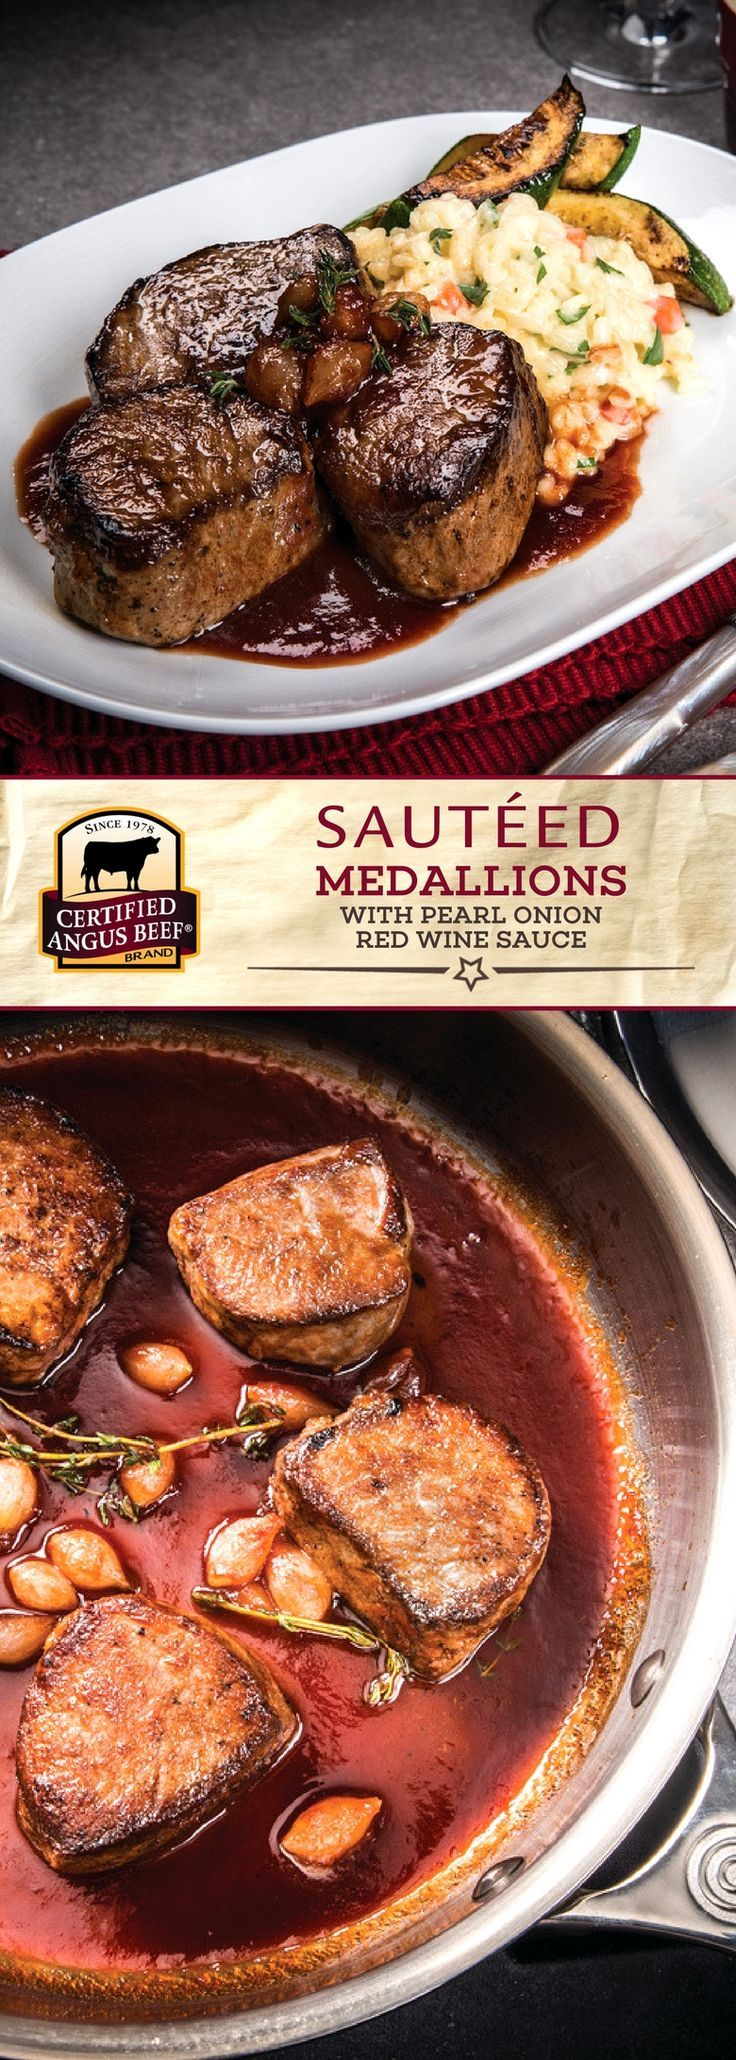 Certified Angus Beef®️️️️️️ brand Sautéed Medallions with Pearl Onion Red Wine Sauce is made with the best bottom sirloin medallions and petite pearl onions. This DELICIOUS recipe uses reduced red wine, tomato paste, pearl onions, thyme, and other spices for the perfect sauce!